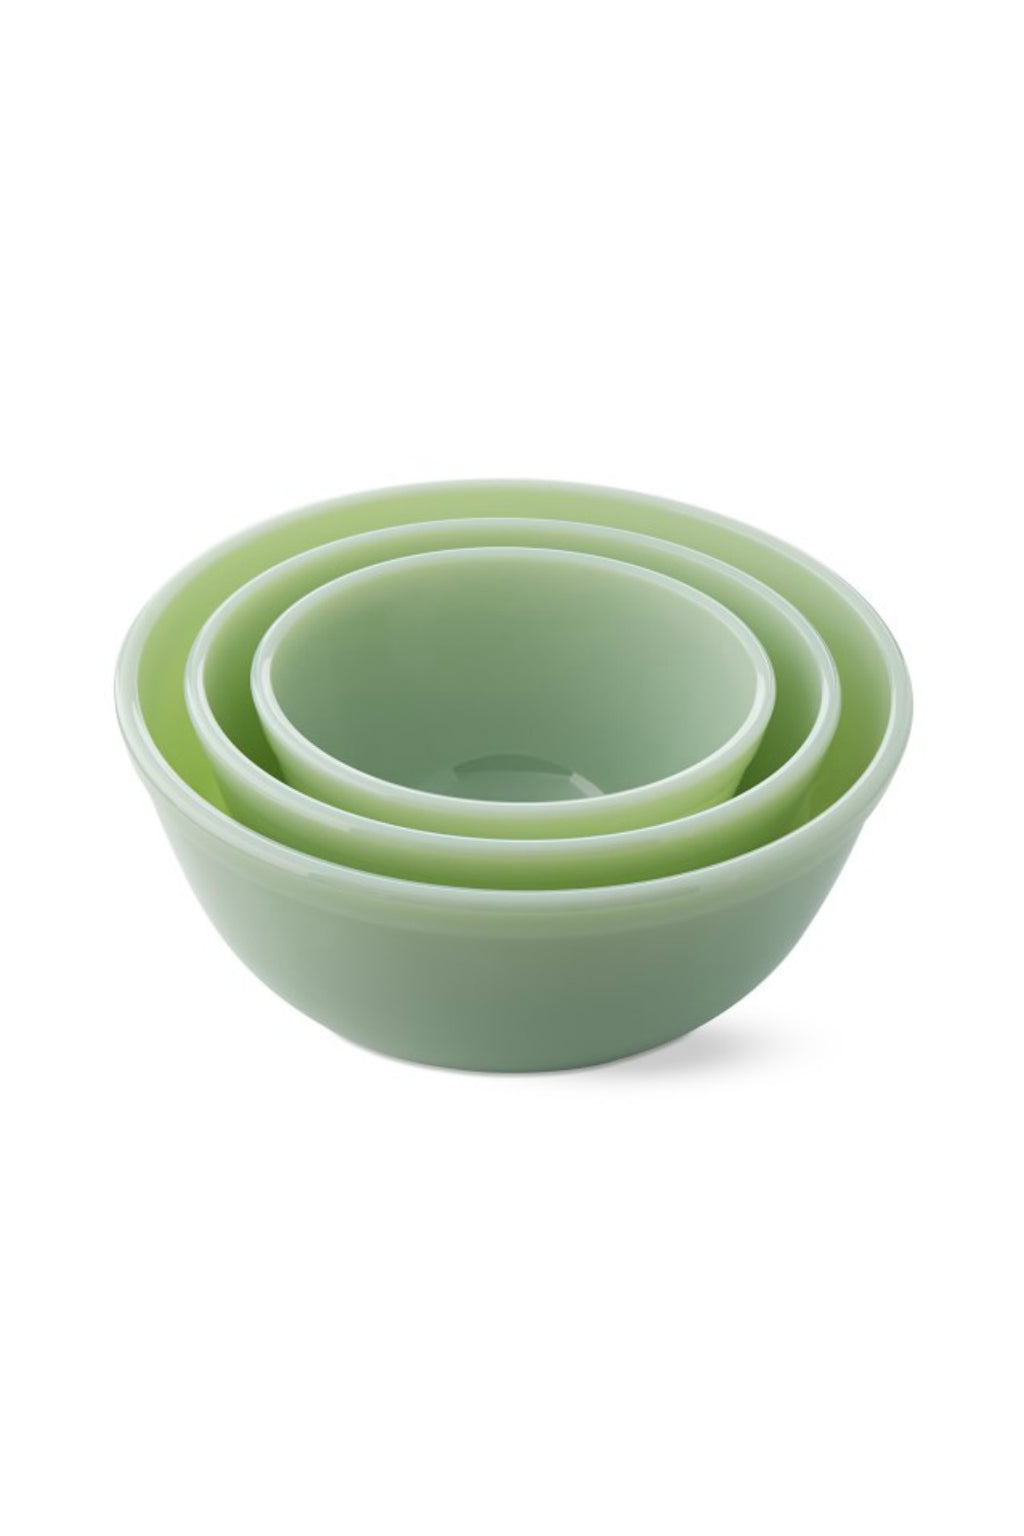 Mosser Glass Mixing Bowls Set in Jade